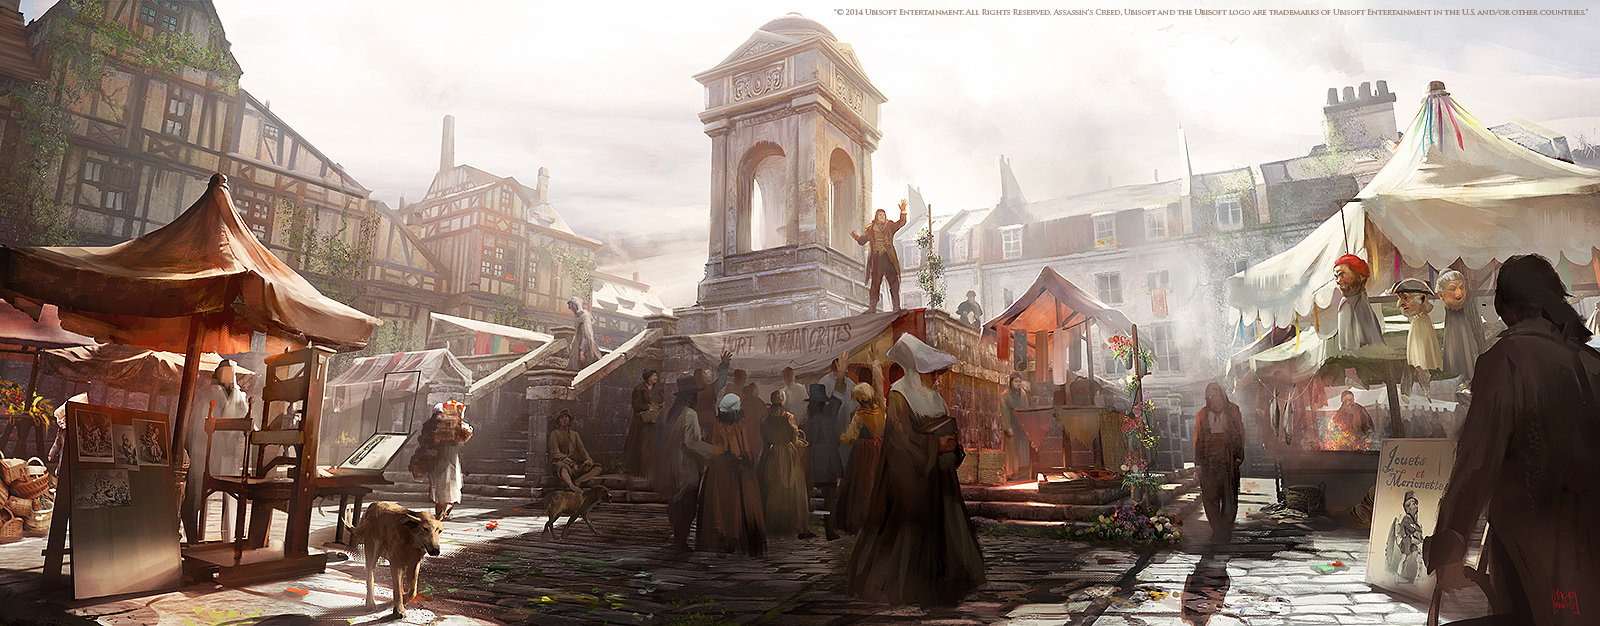 Nacho Yague Digital Painting Concept art Assassin's Creed